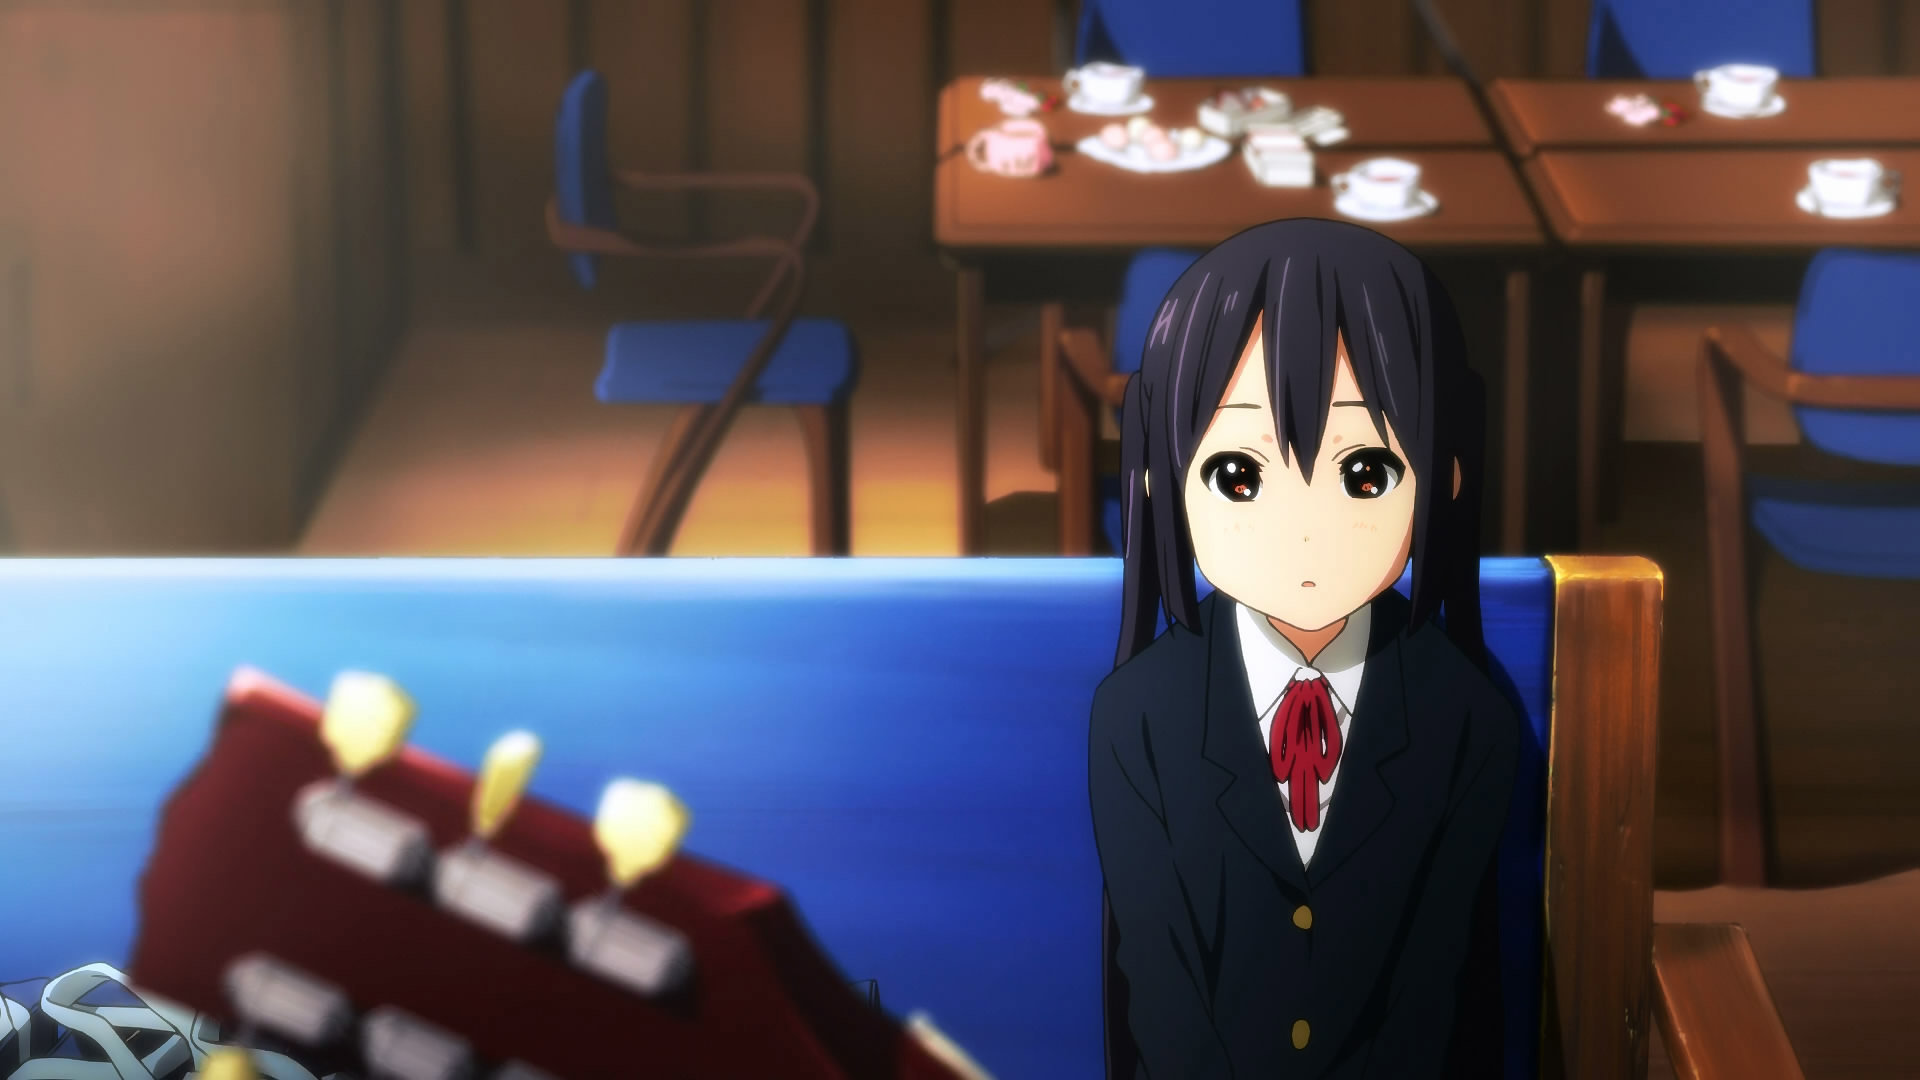 Free Azusa Nakano high quality background ID:212911 for hd 1920x1080 PC